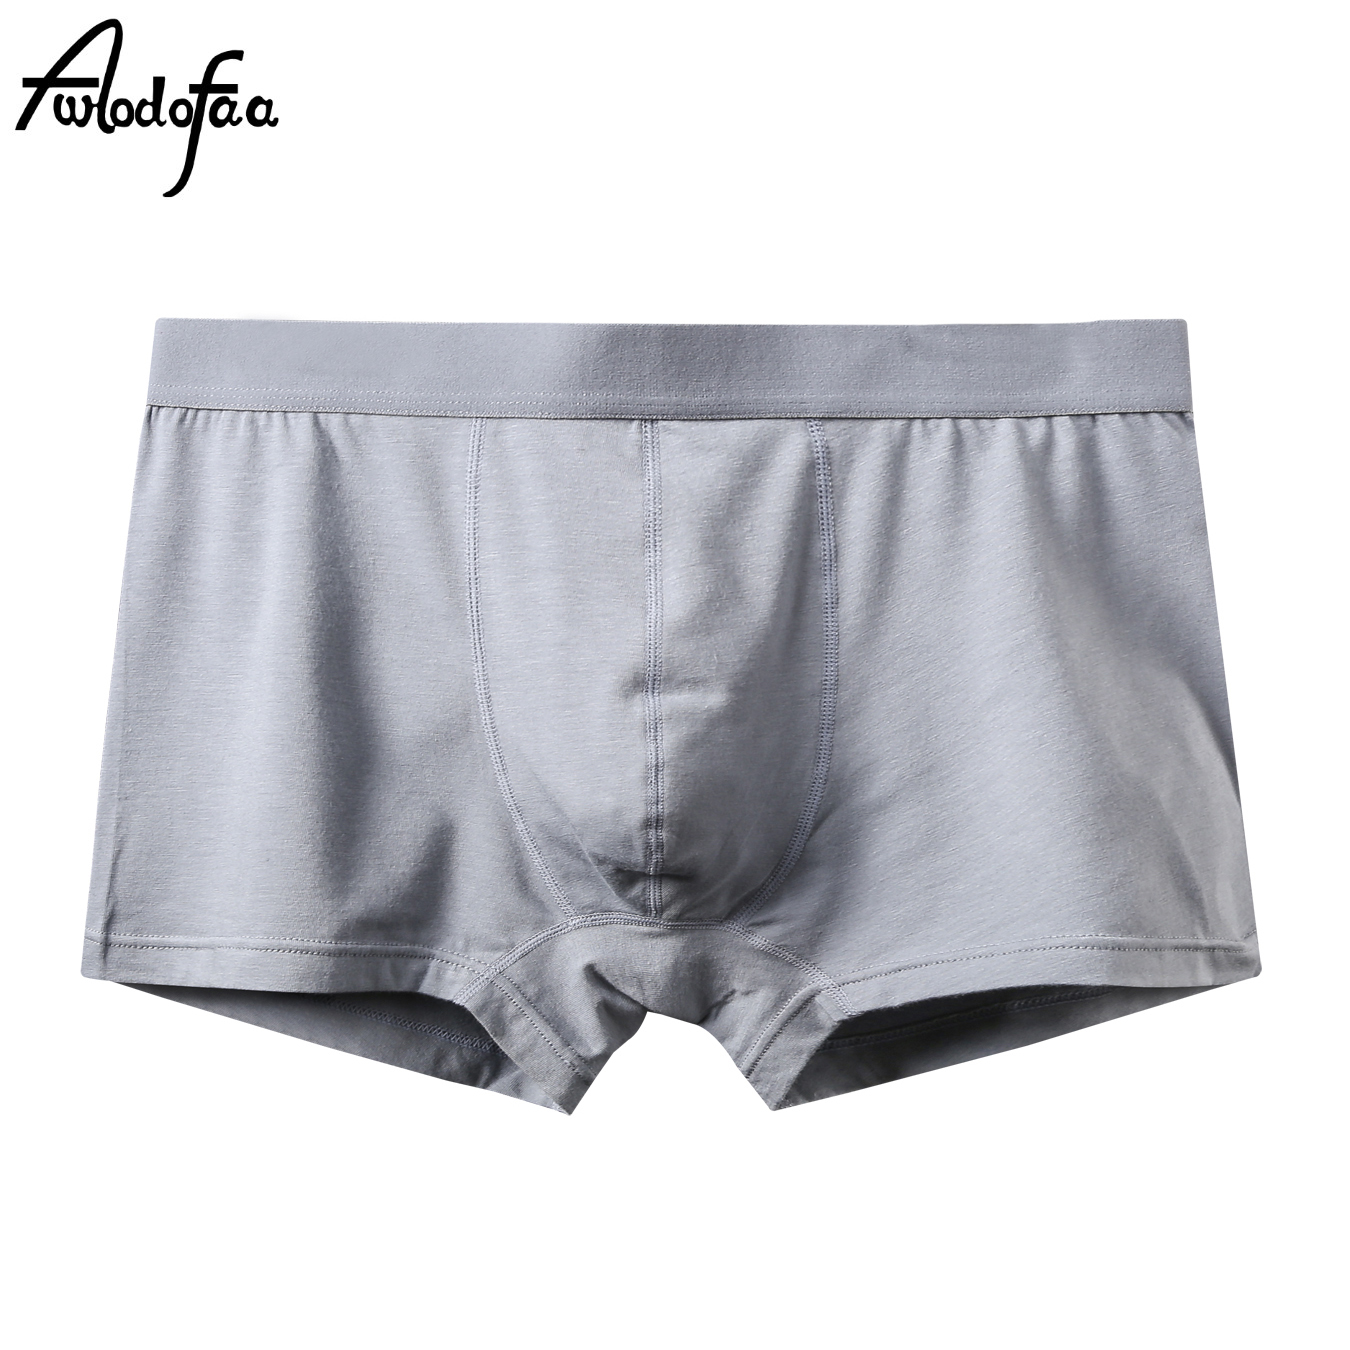 Fashion Underwear Brand Mens Underwear Cotton Boxers Underpants Breathable Boxer Shorts Men Panties Sexy Male Underwears Cueca